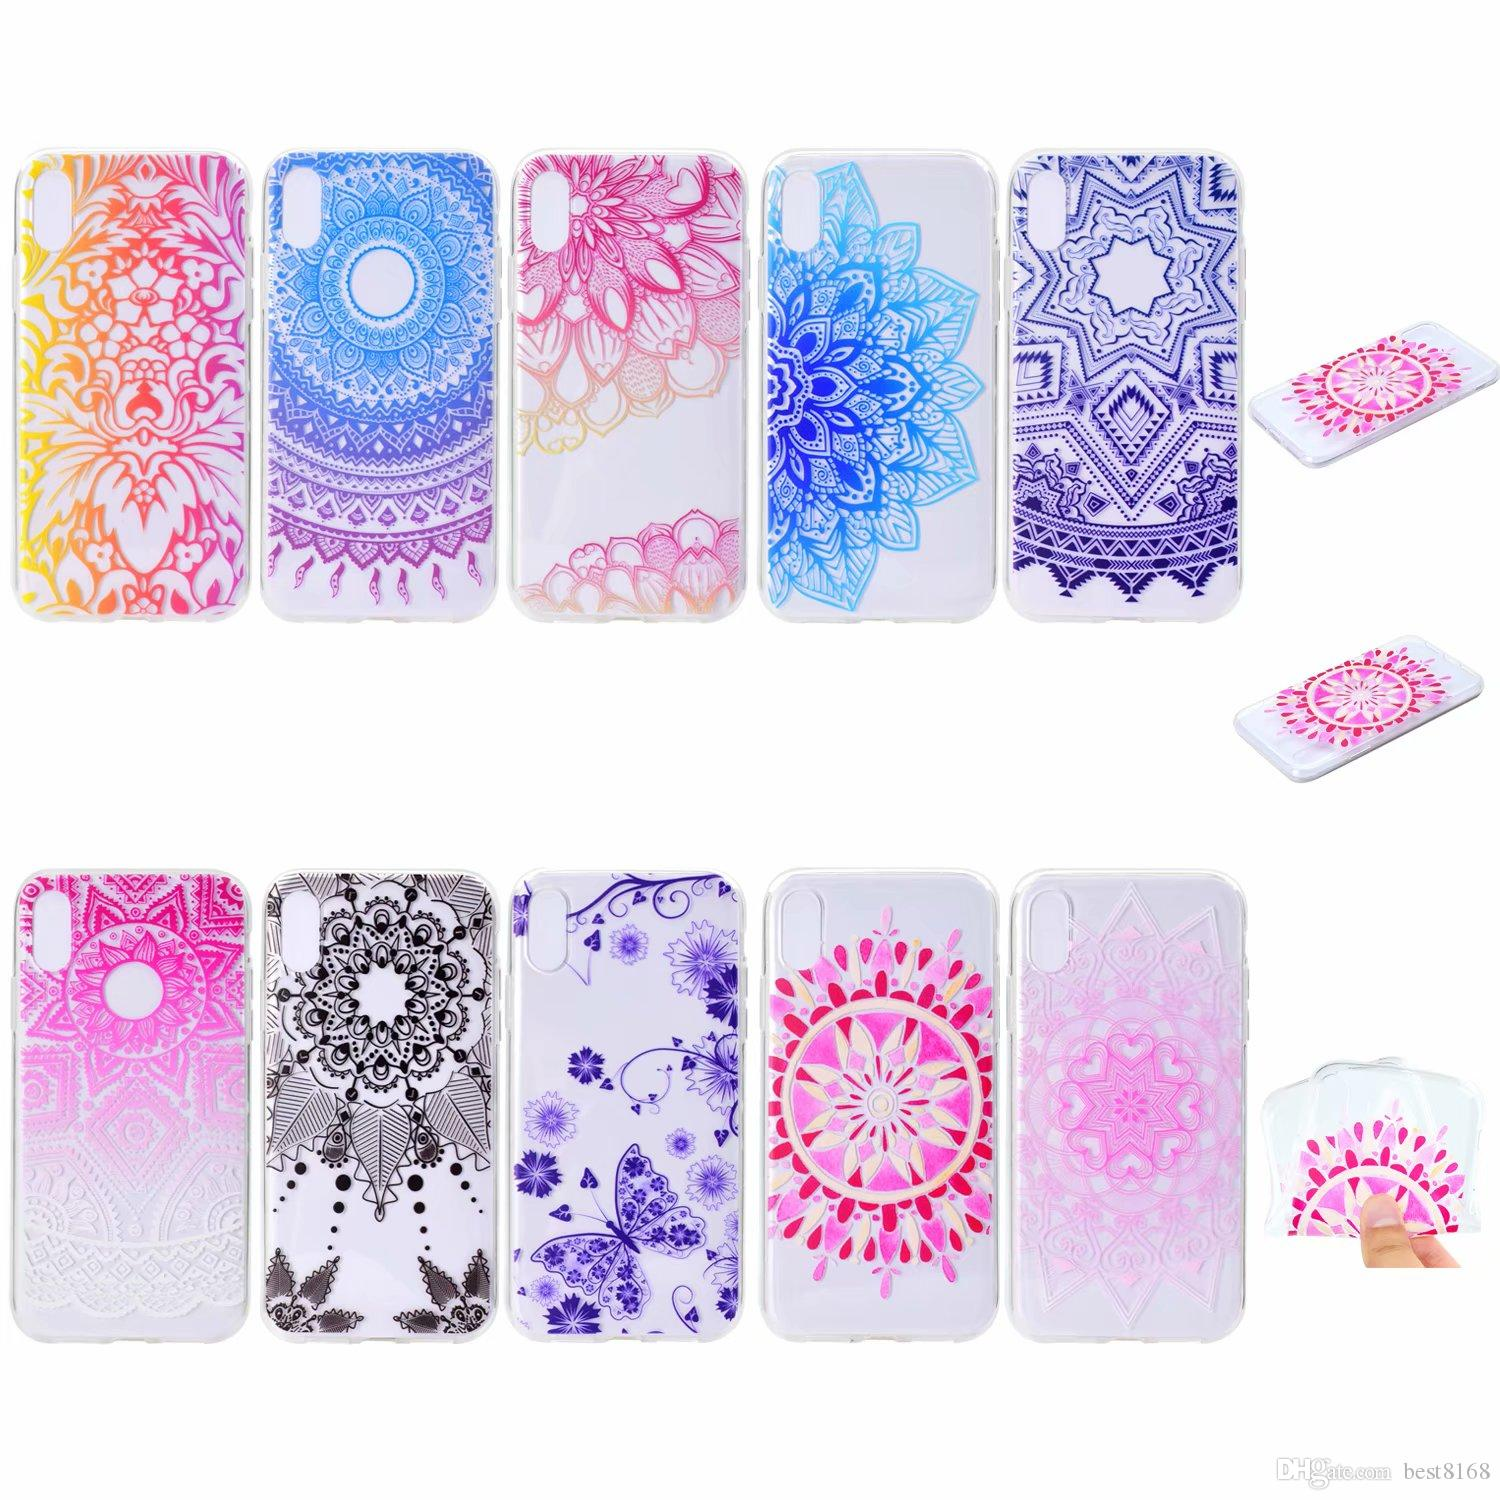 Soft Tpu Case For Galaxy Note9 Iphone Xr Xs Max Huawei P20 Lite Pro Casing 4 4s Softcase Motif Owl Lace Flower Dreamcatcher Silicone Butterfly Gradient Mobile Phone Covers Customize